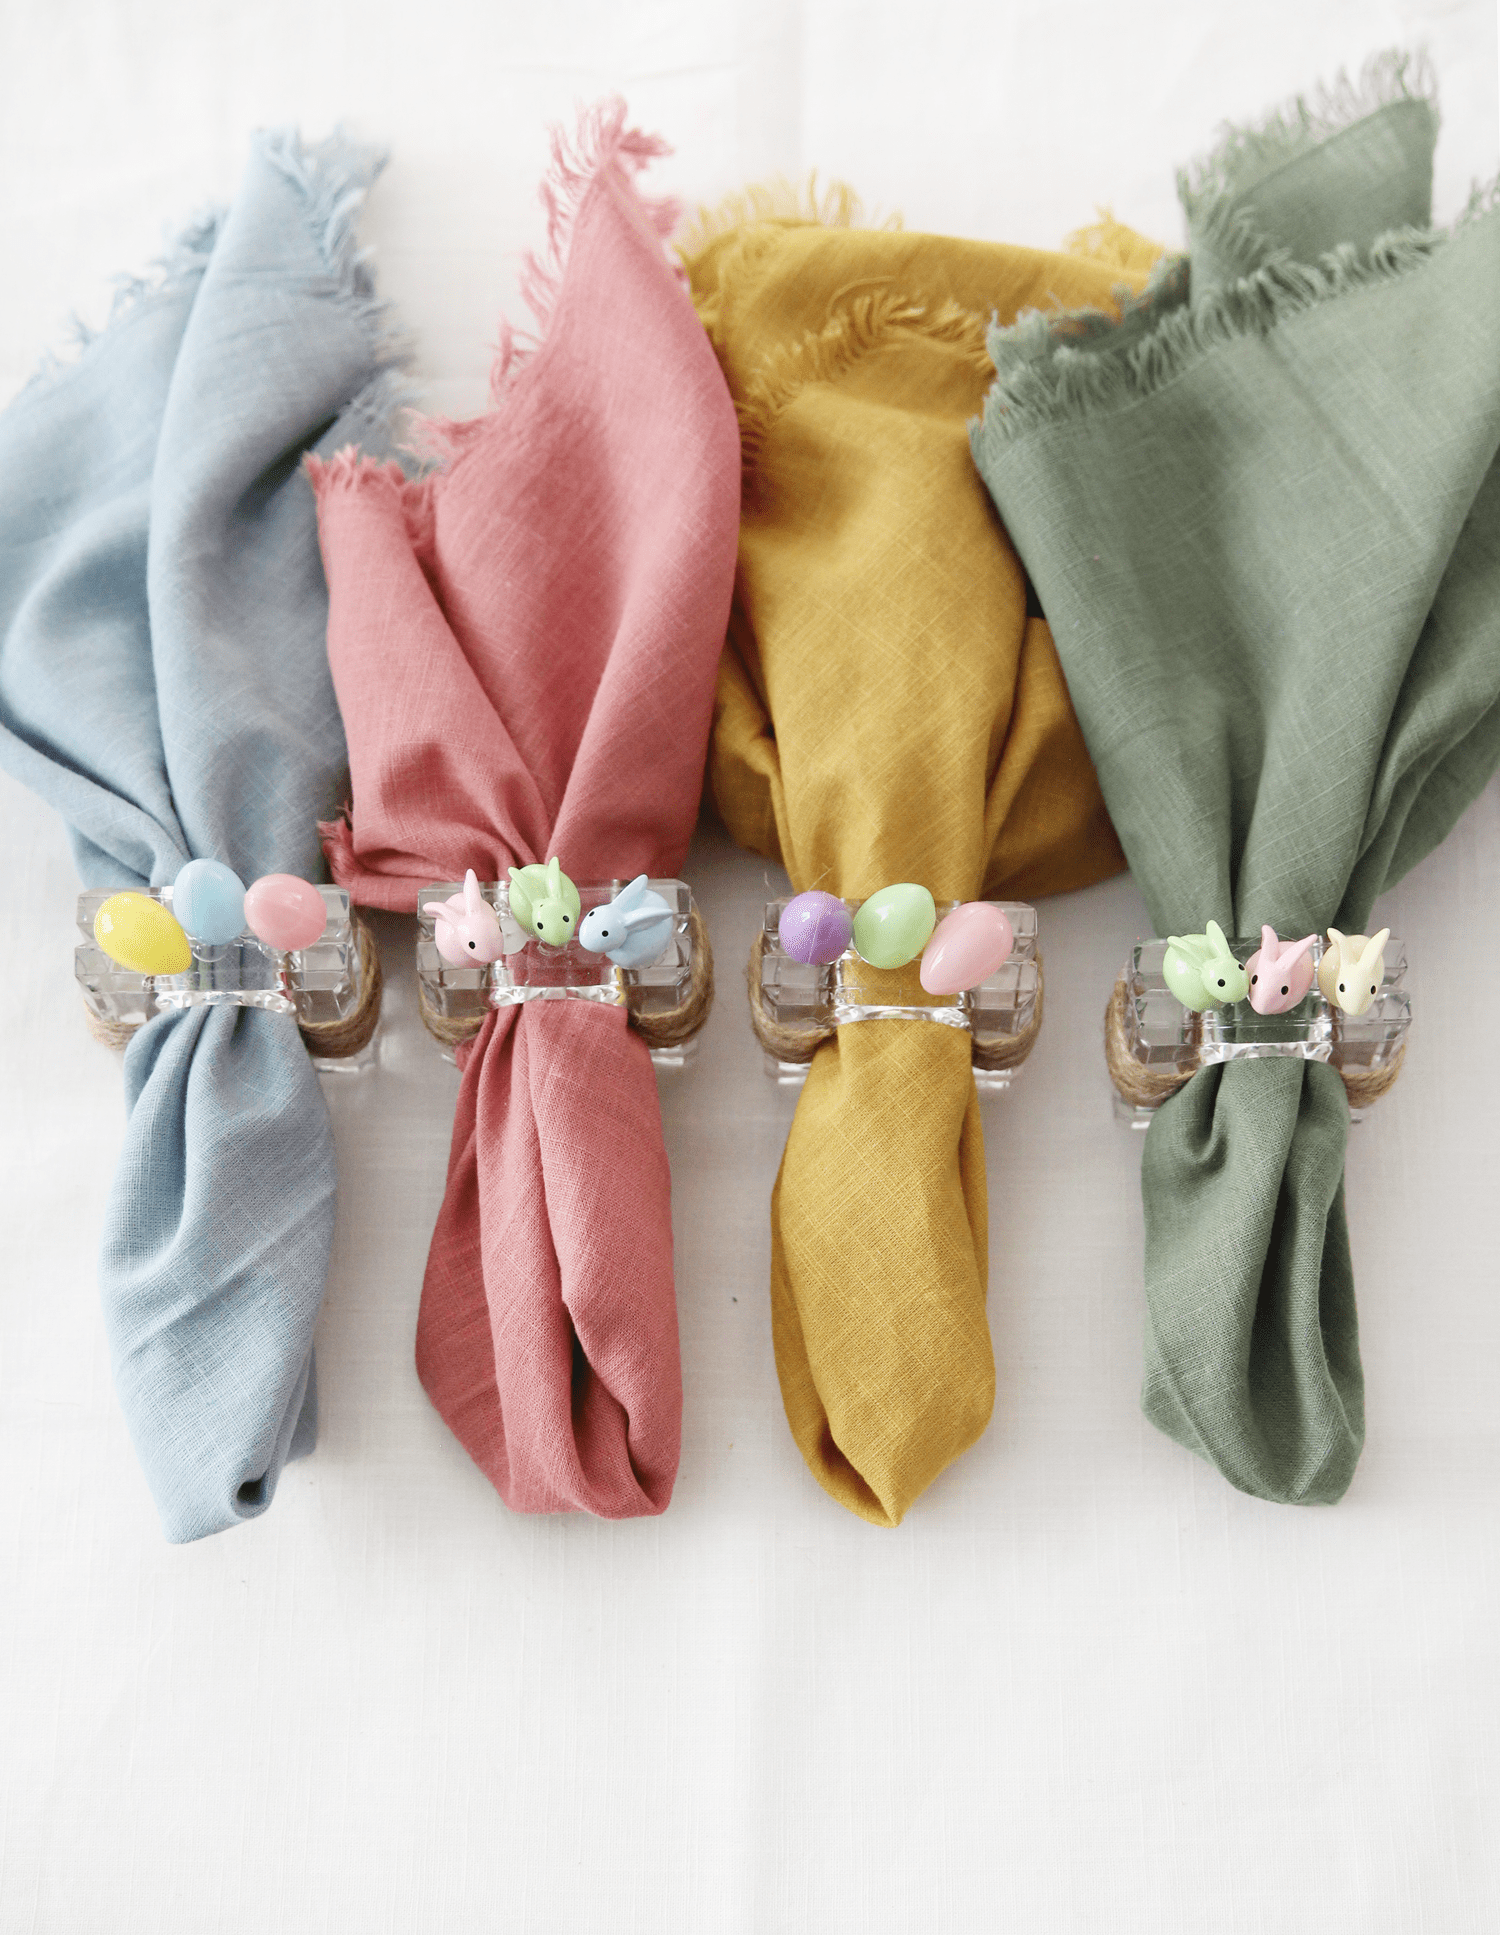 Diy Easter Napkin Rings Blissmakes Easter Napkins Rings Easter Napkins Napkin Rings